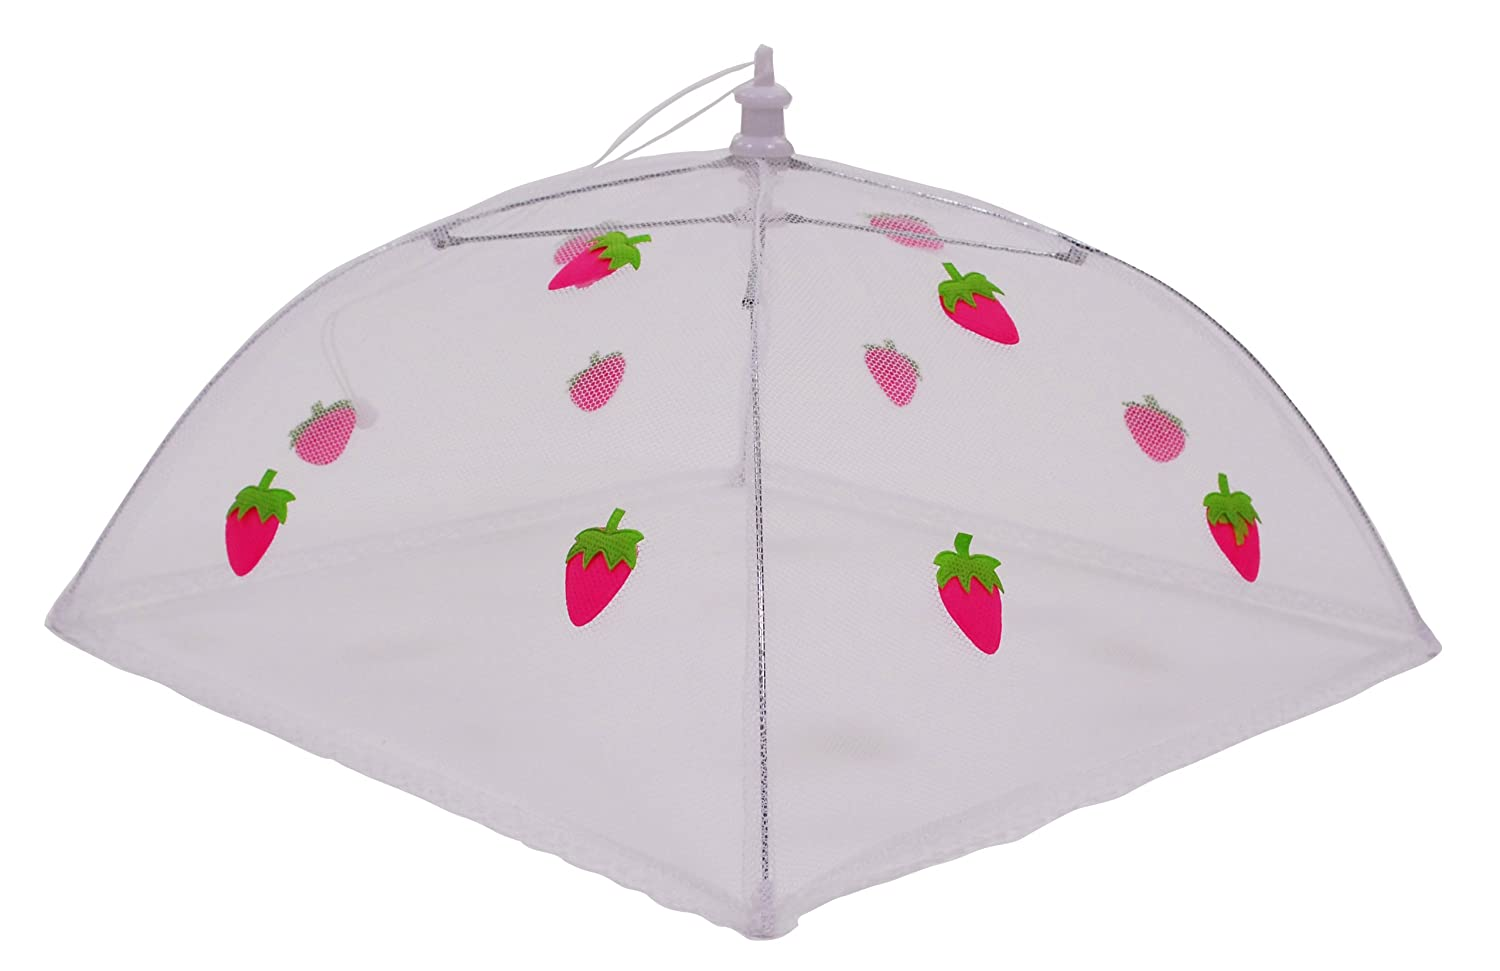 Epicurean 39JN1154ST Polyester with Zinc Plated Steel Frame Food Cover Umbrella, 48 x 48 cm, White/Pink/ Green Epicurean Ltd